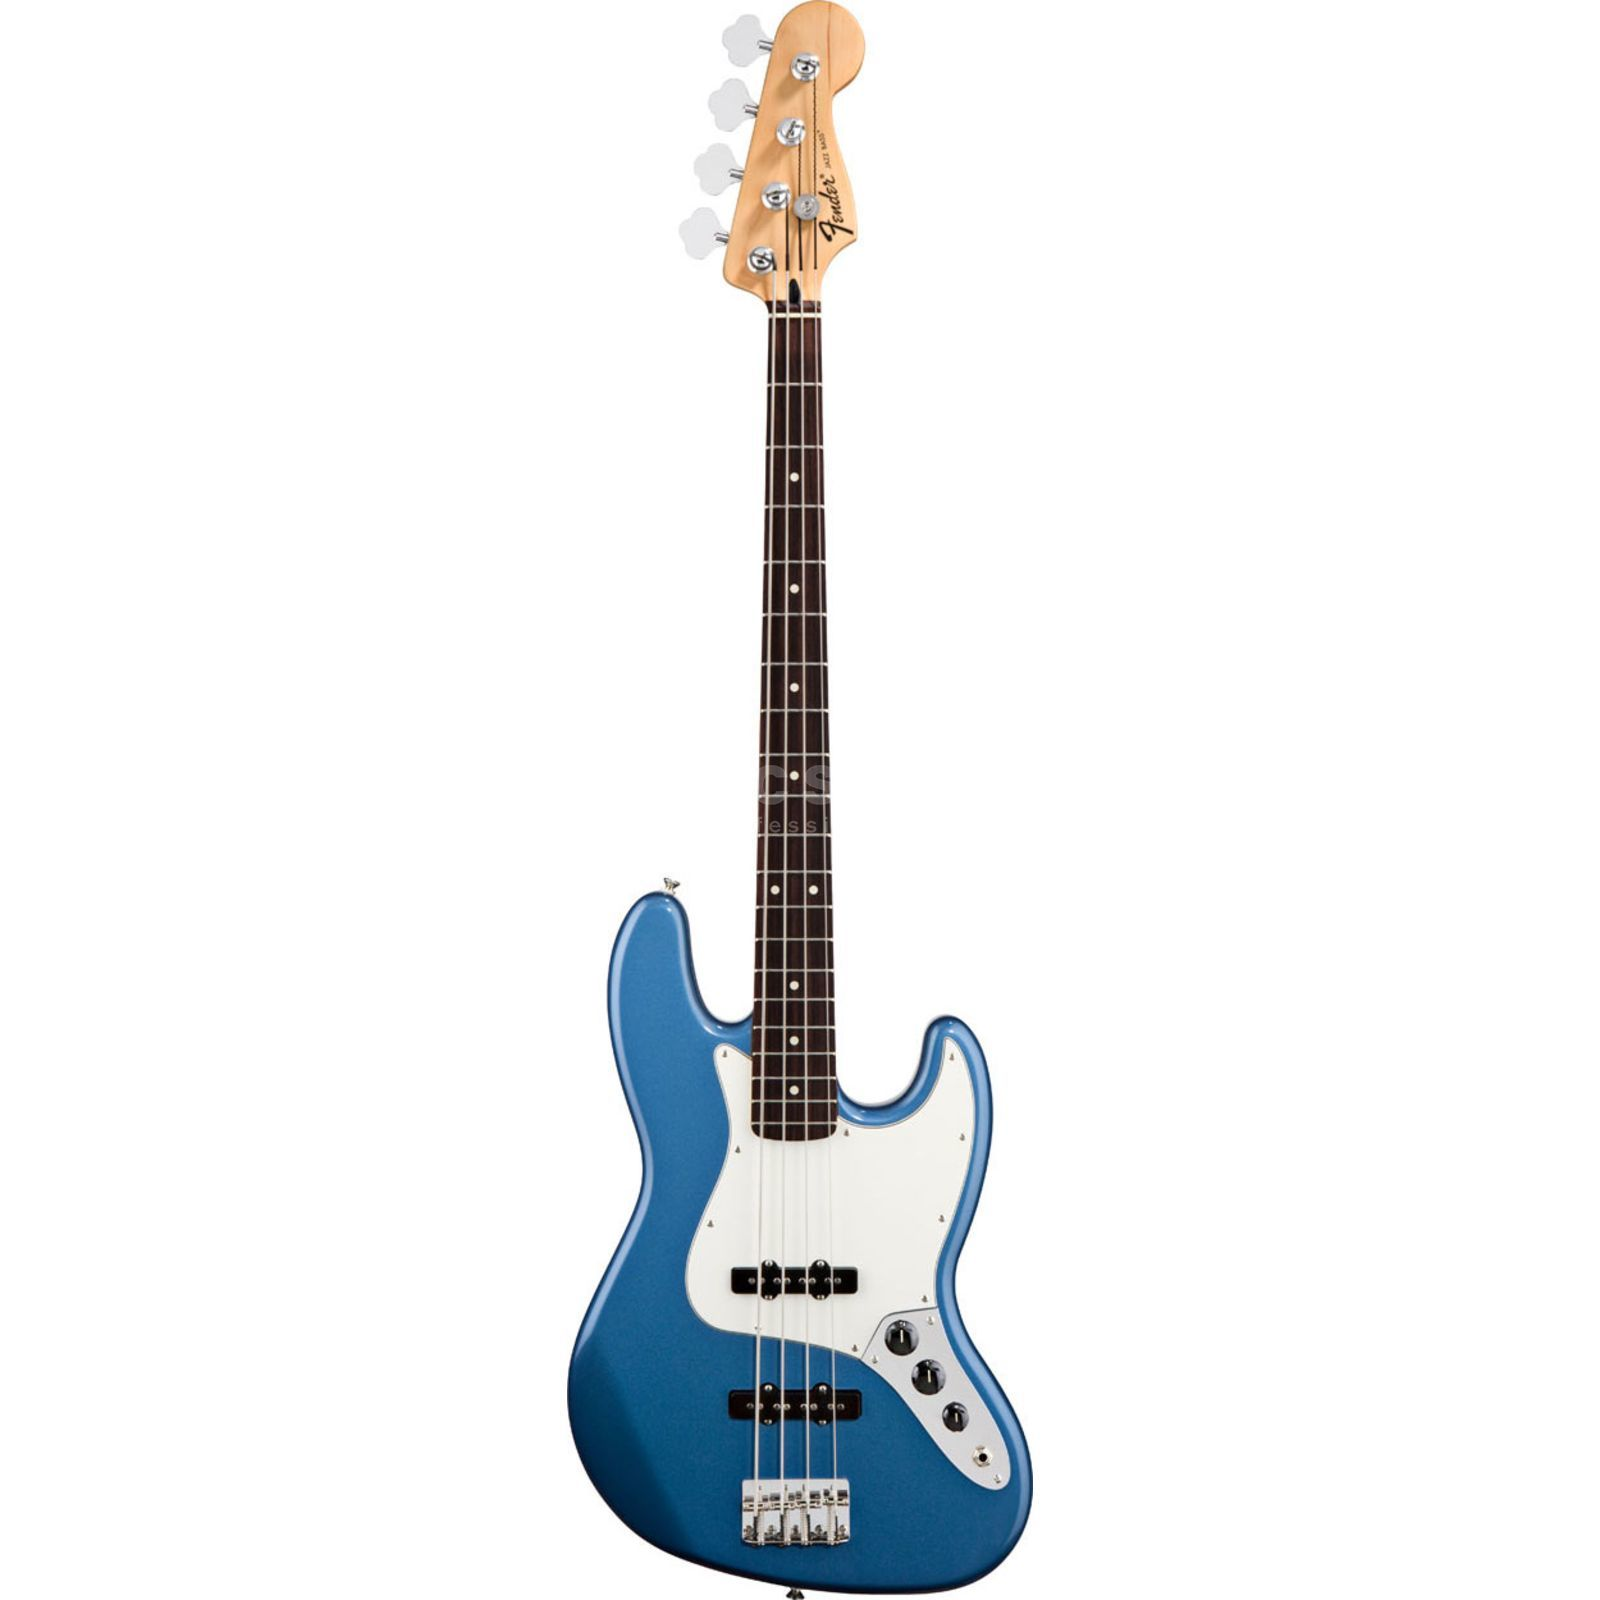 Fender Standard Jazz Bass RW Lake Placid Blue Image du produit